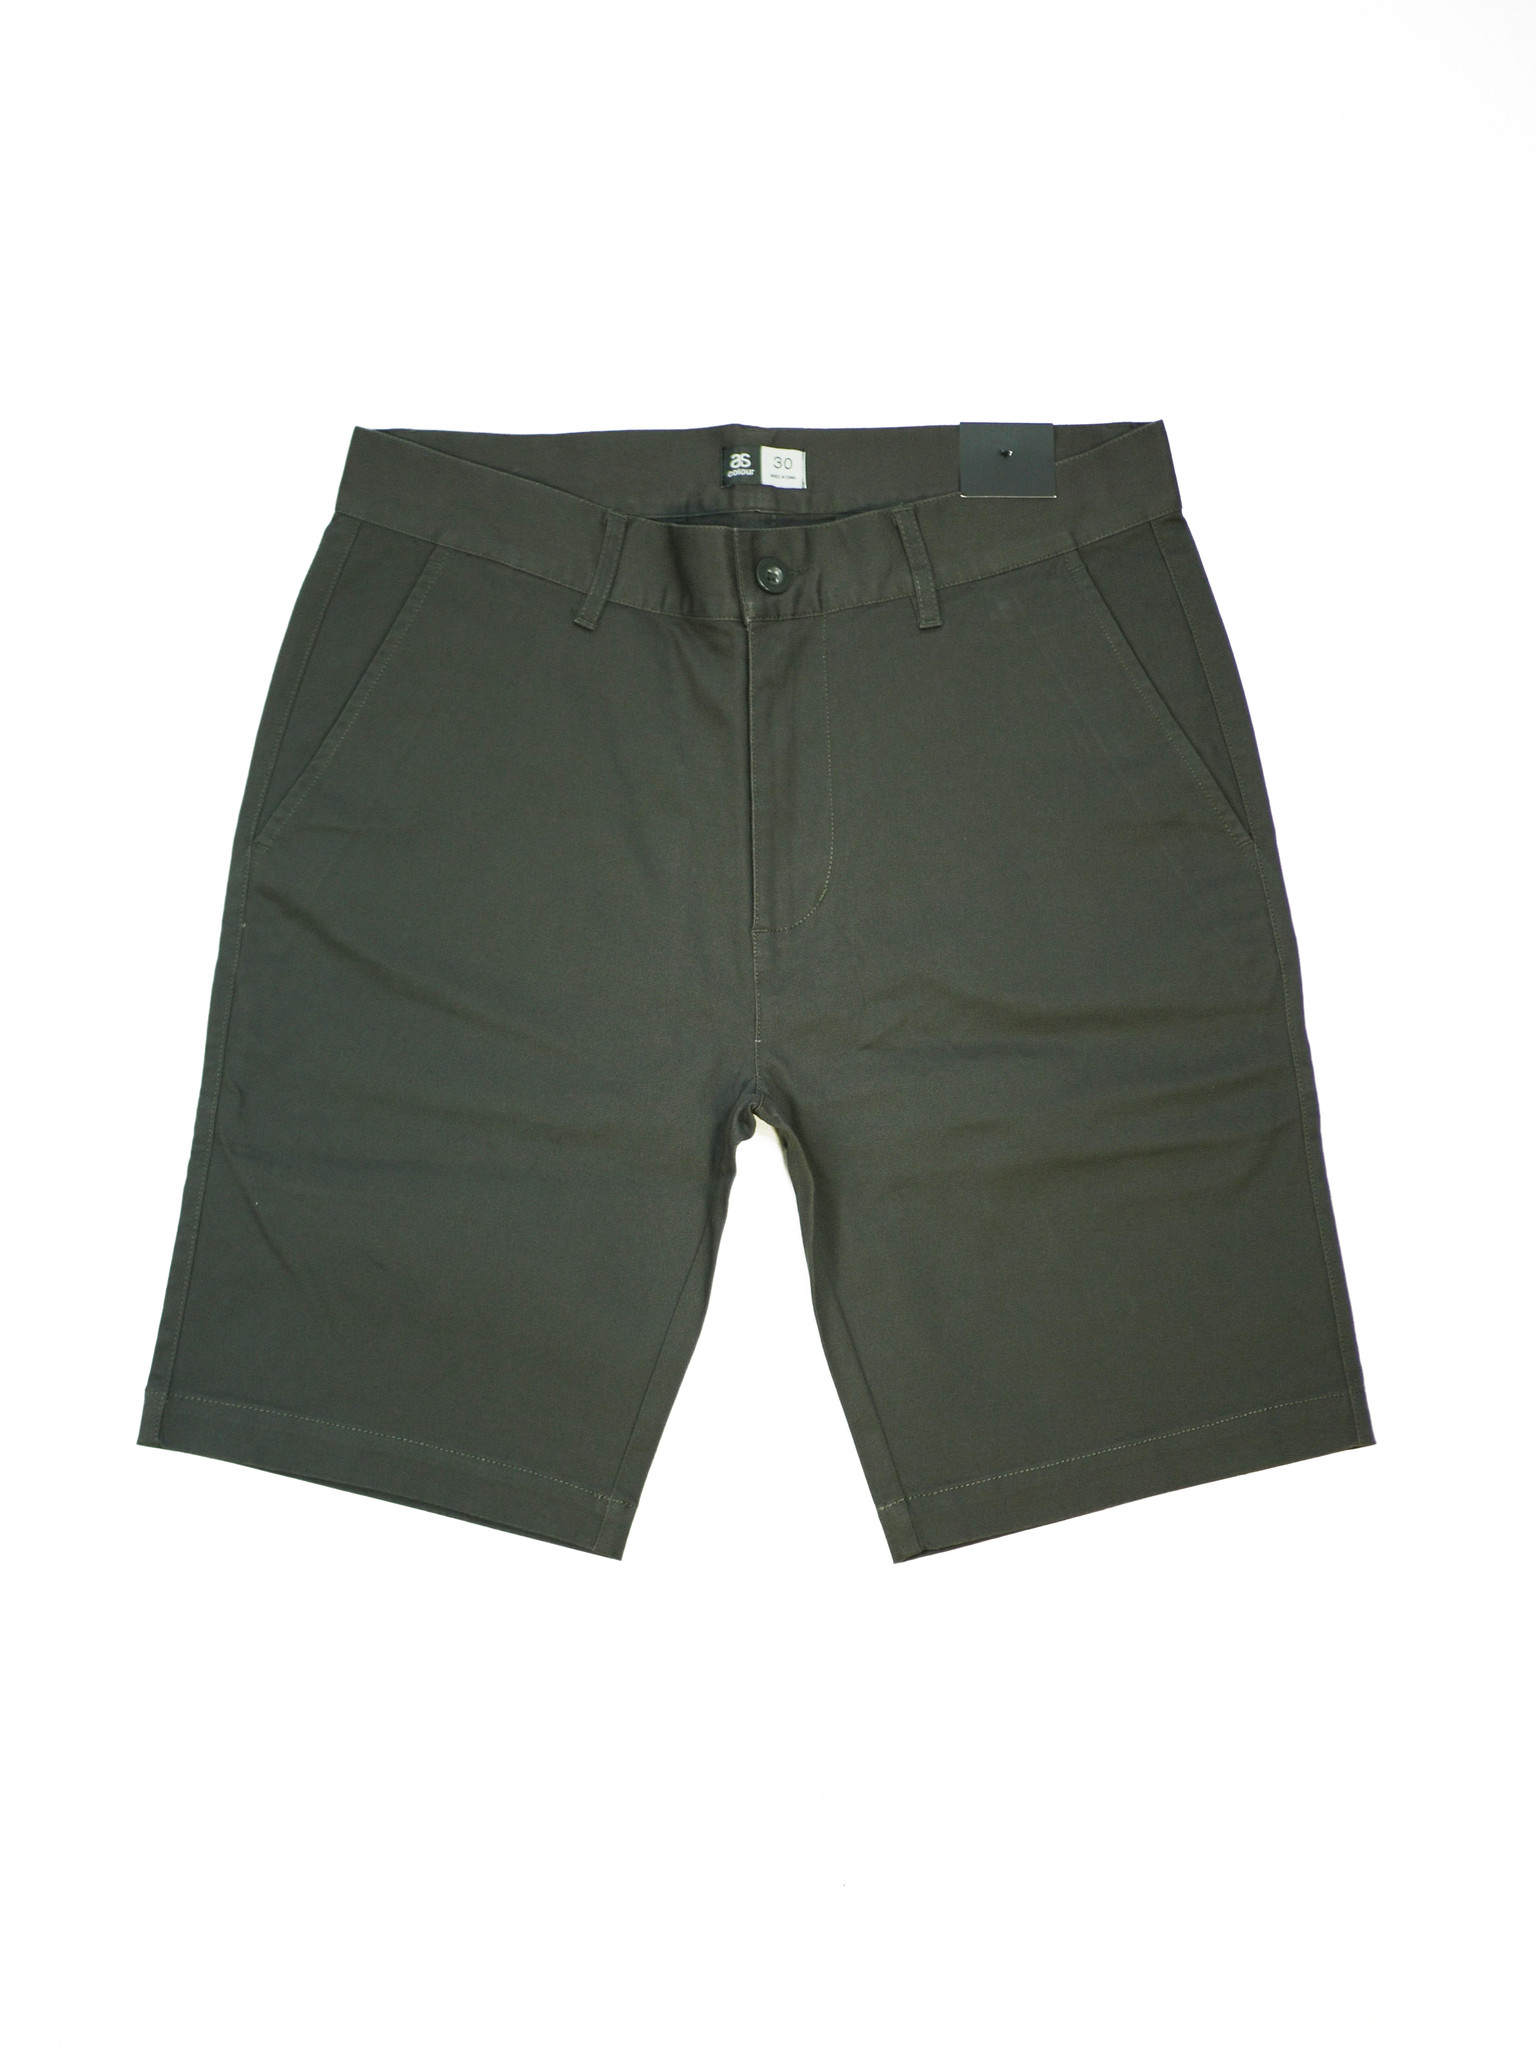 BLUETILE BLUETILE SURPLUS SHORT GREY